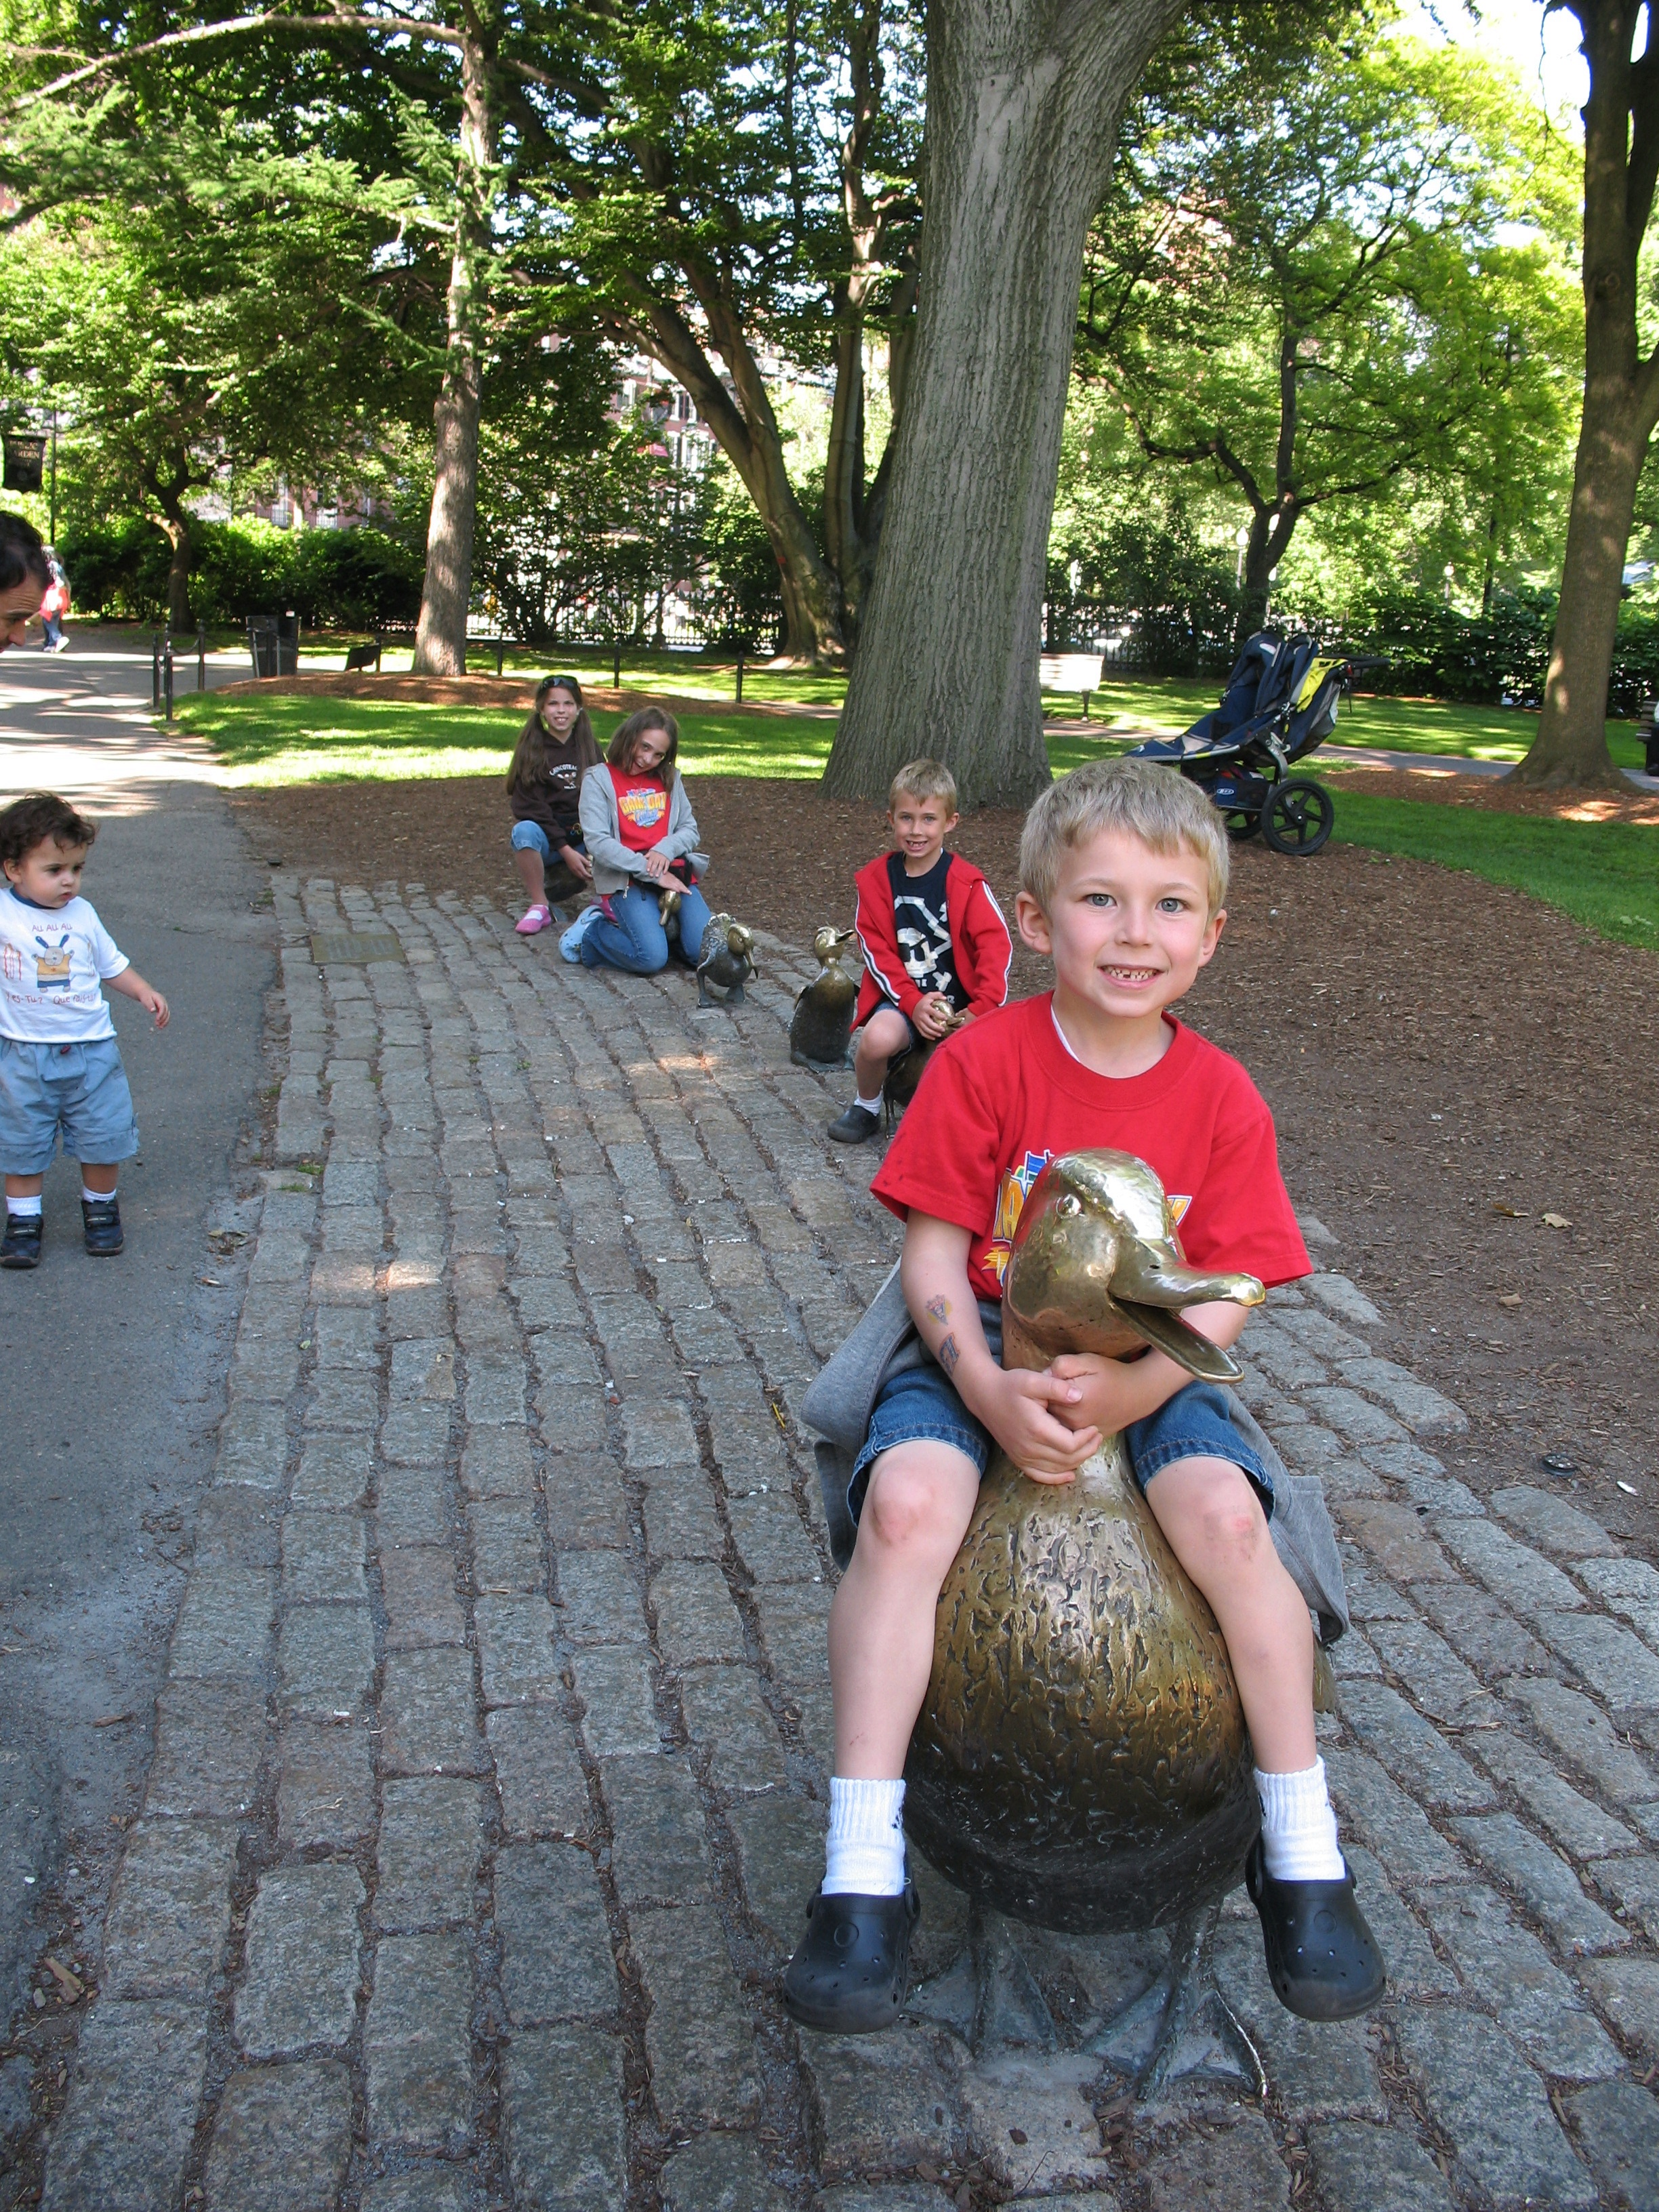 the kiddos at the public gardens